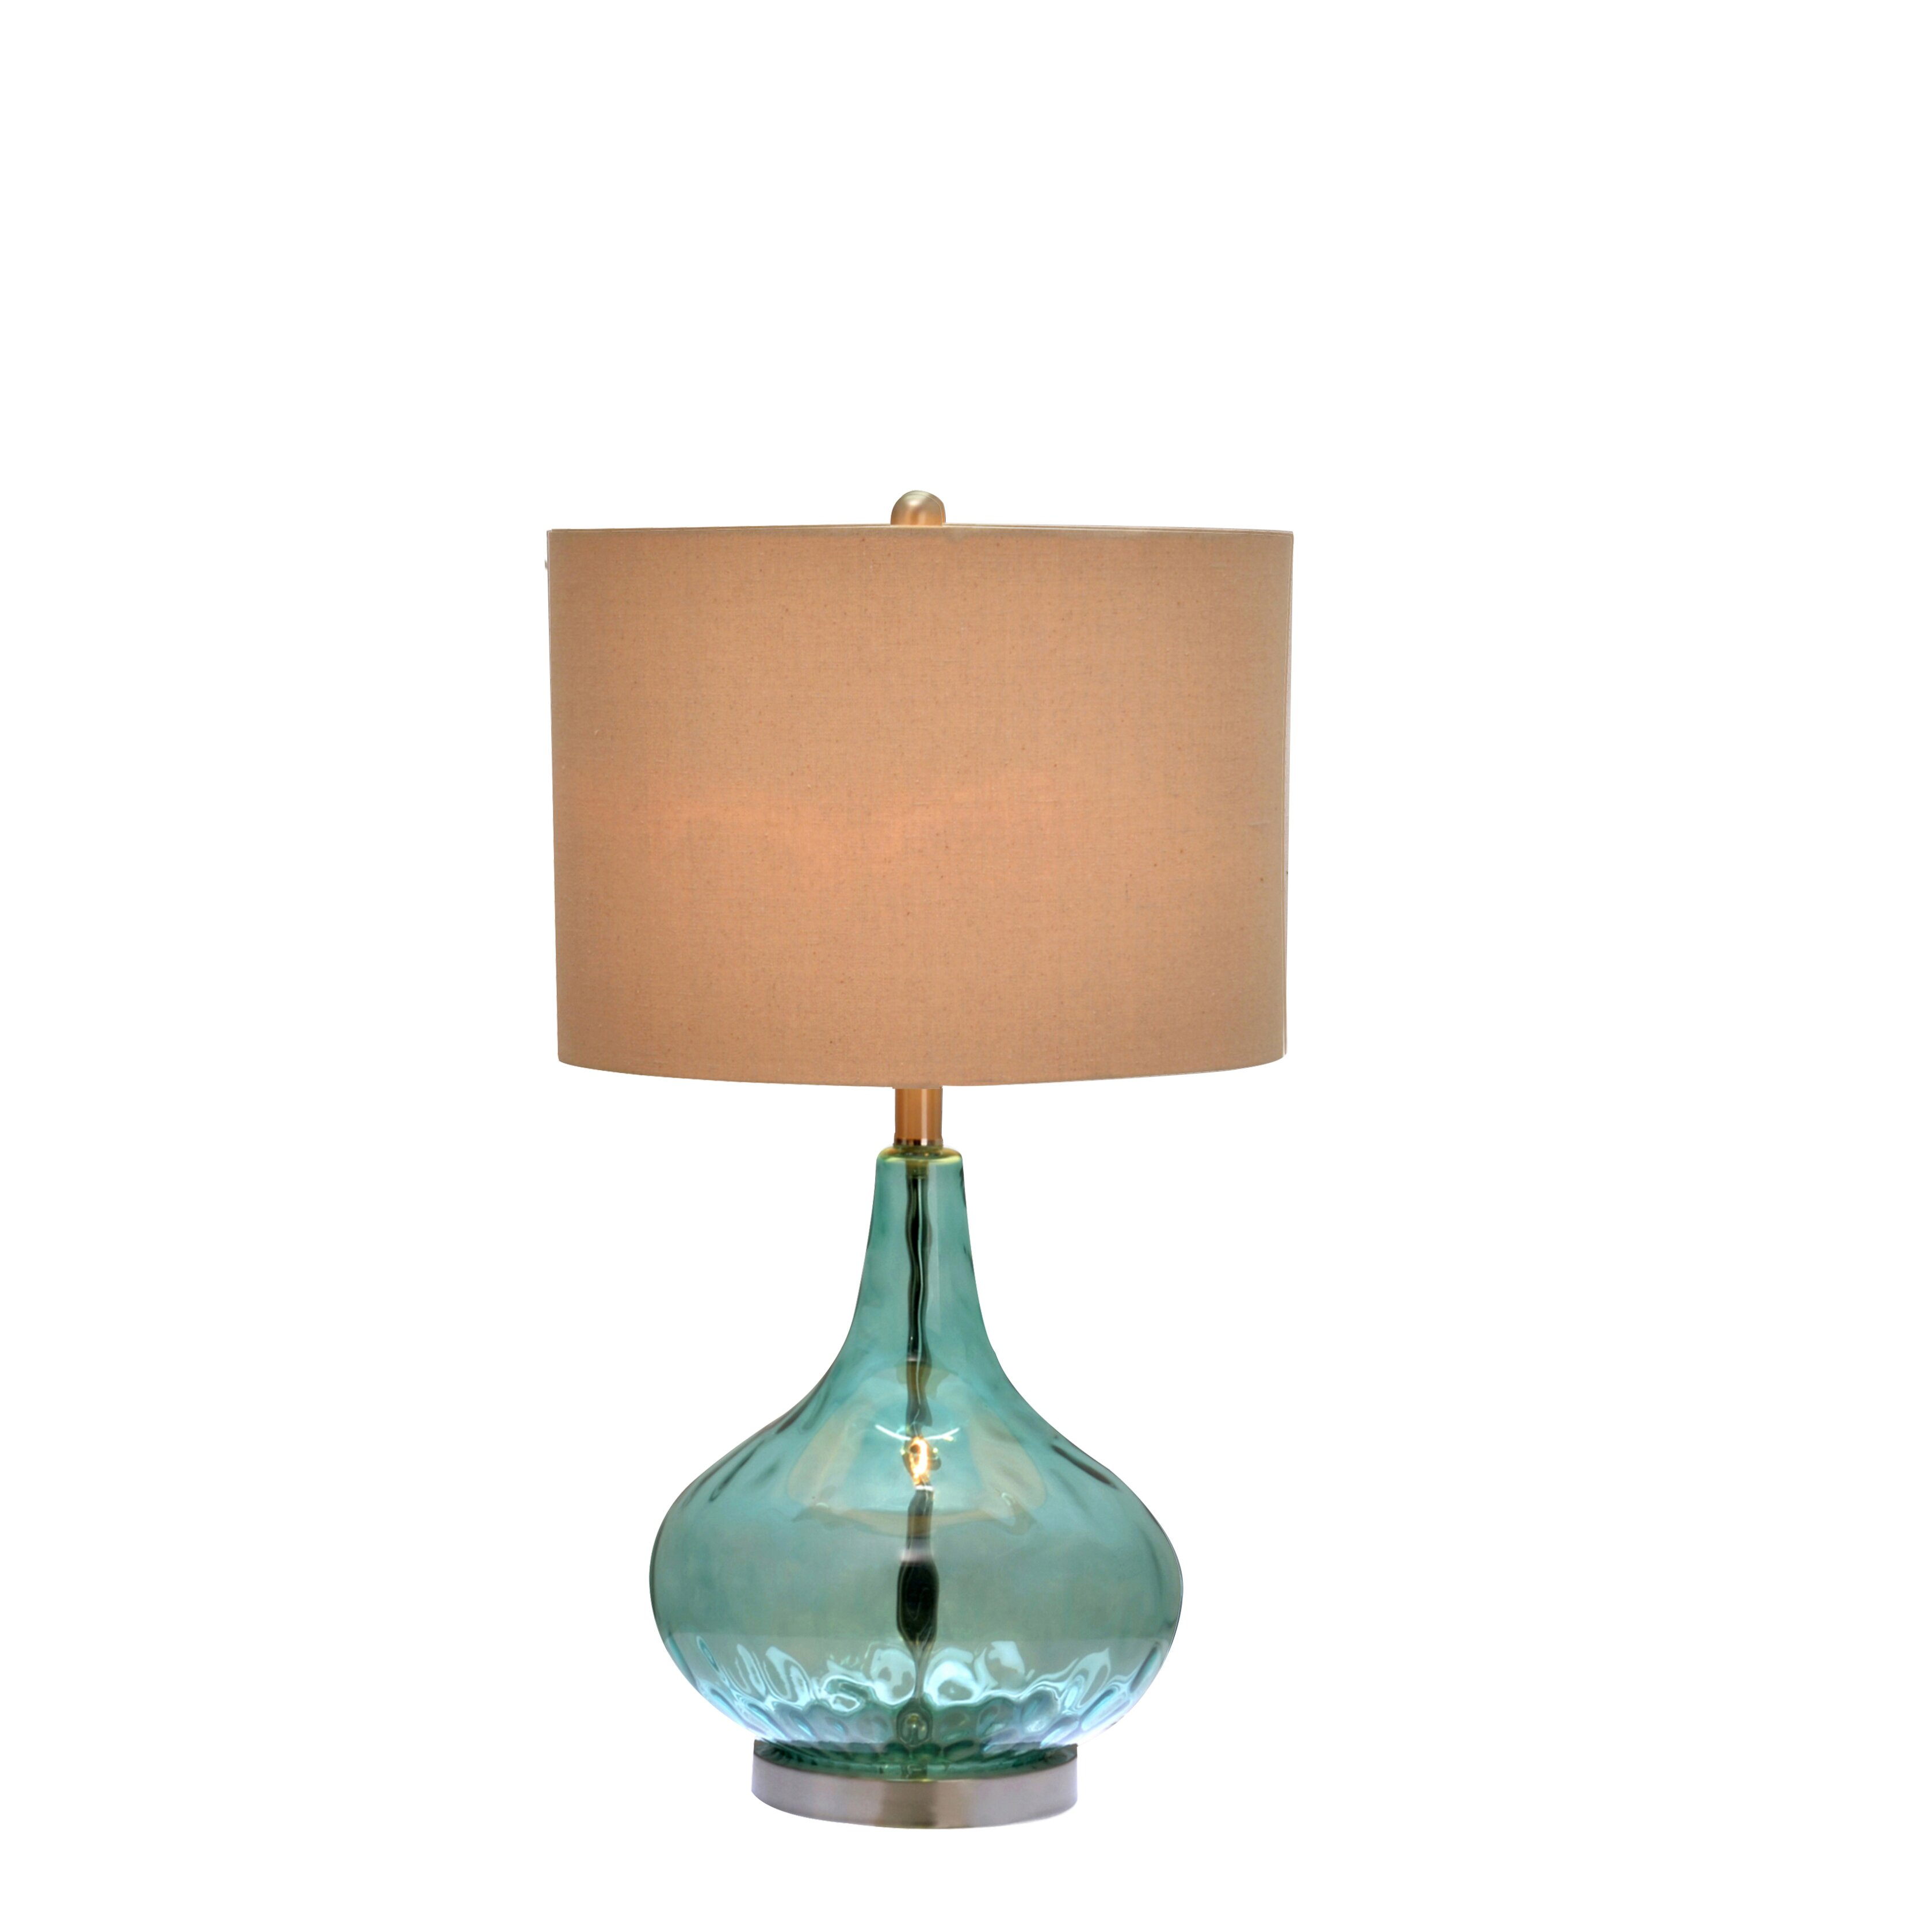 Madras 1 light square table lamp in blue best inspiration for lighting lamps table lamps catalina lighting sku evi1142 mozeypictures Image collections